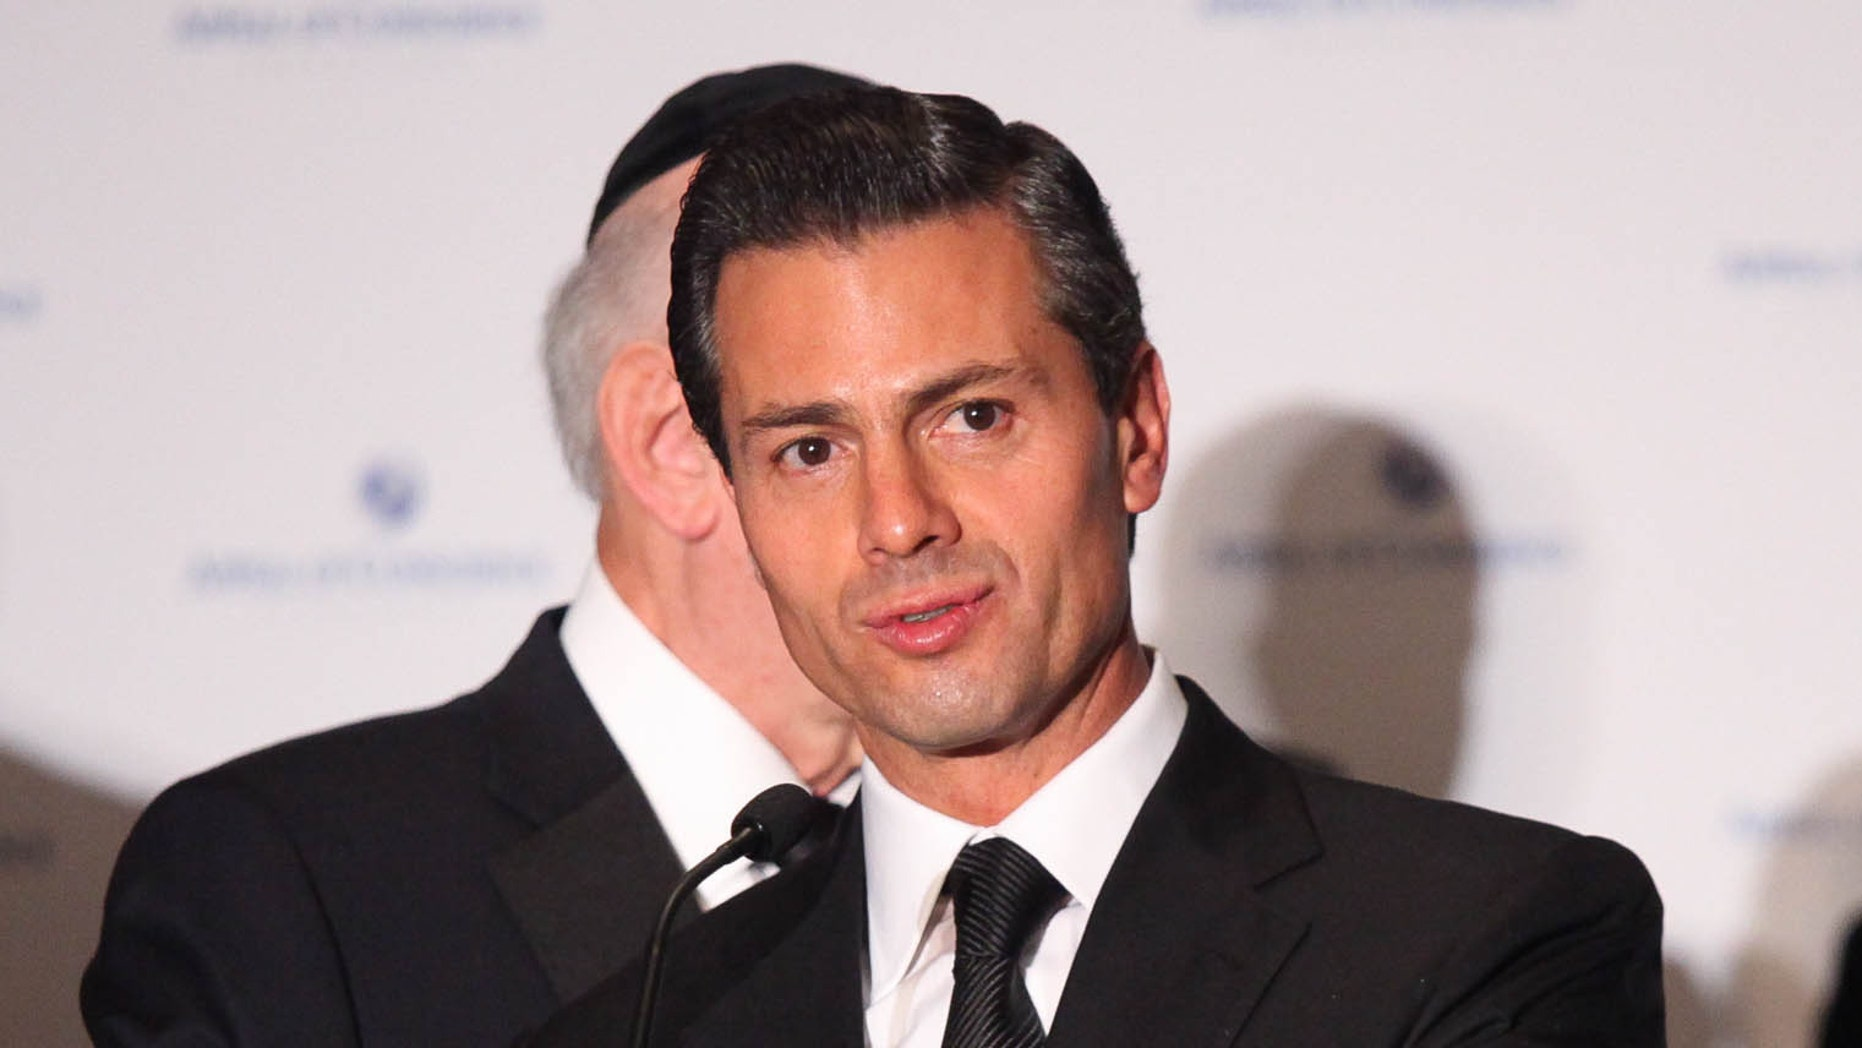 NEW YORK, NY - SEPTEMBER 23:  Mexican President Enrique Pena Nieto attends 2014 Appeal of Conscience Foundation Awards at The Waldorf=Astoria on September 23, 2014 in New York City.  (Photo by Rob Kim/Getty Images)